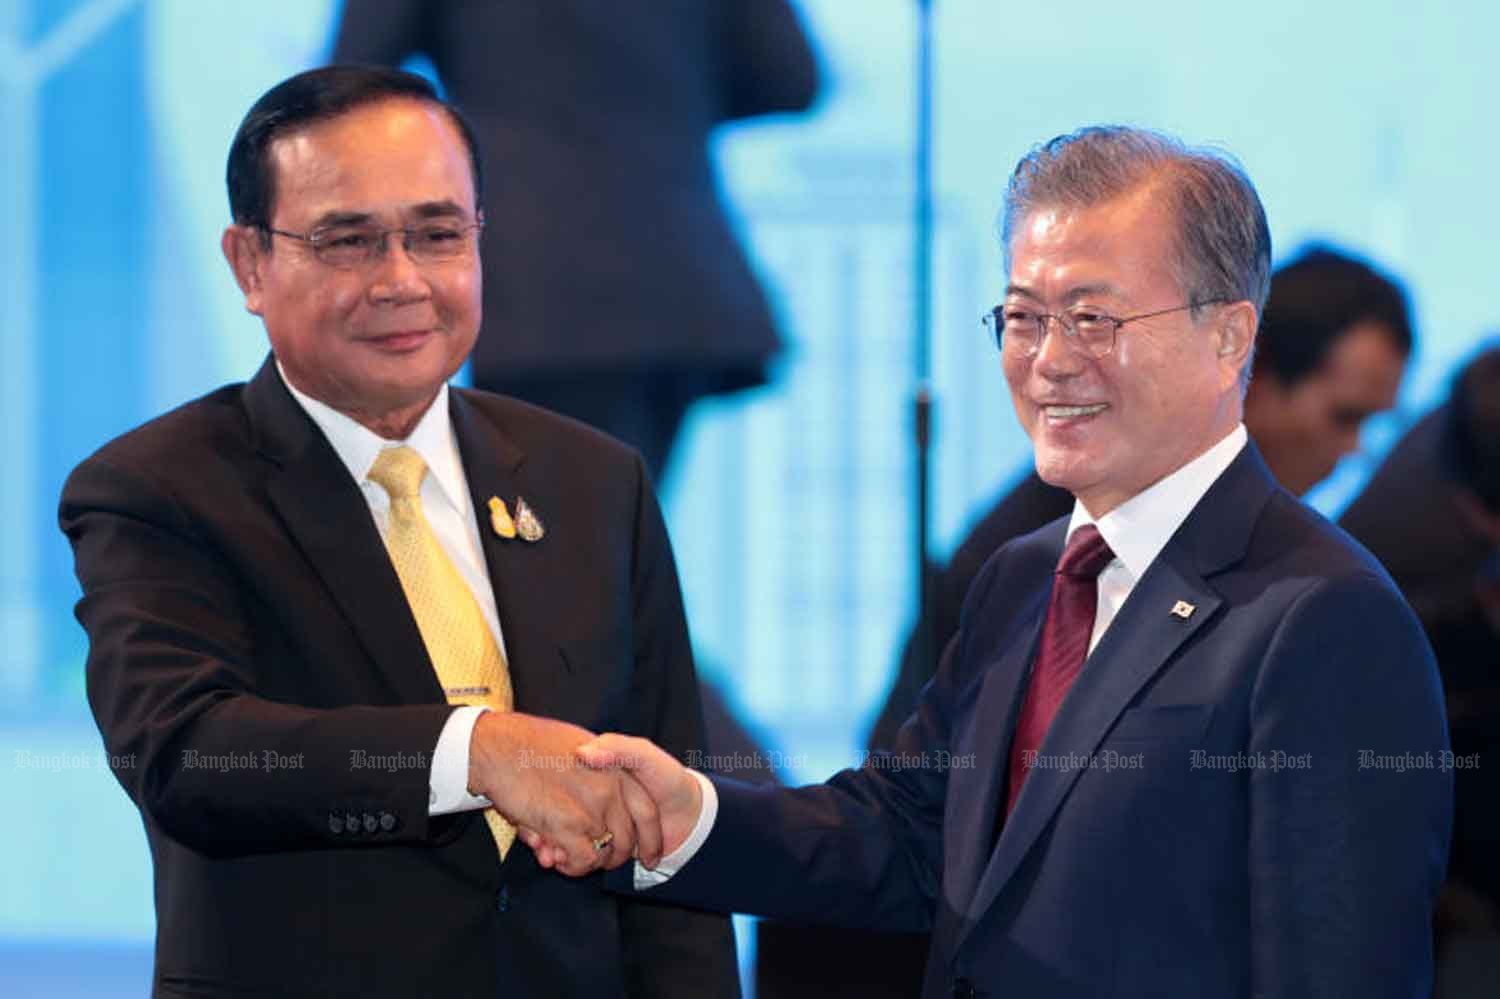 Prime Minister Prayut Chan-o-cha, left, and South Korean President Moon Jae-in. (Bangkok Post file photo)